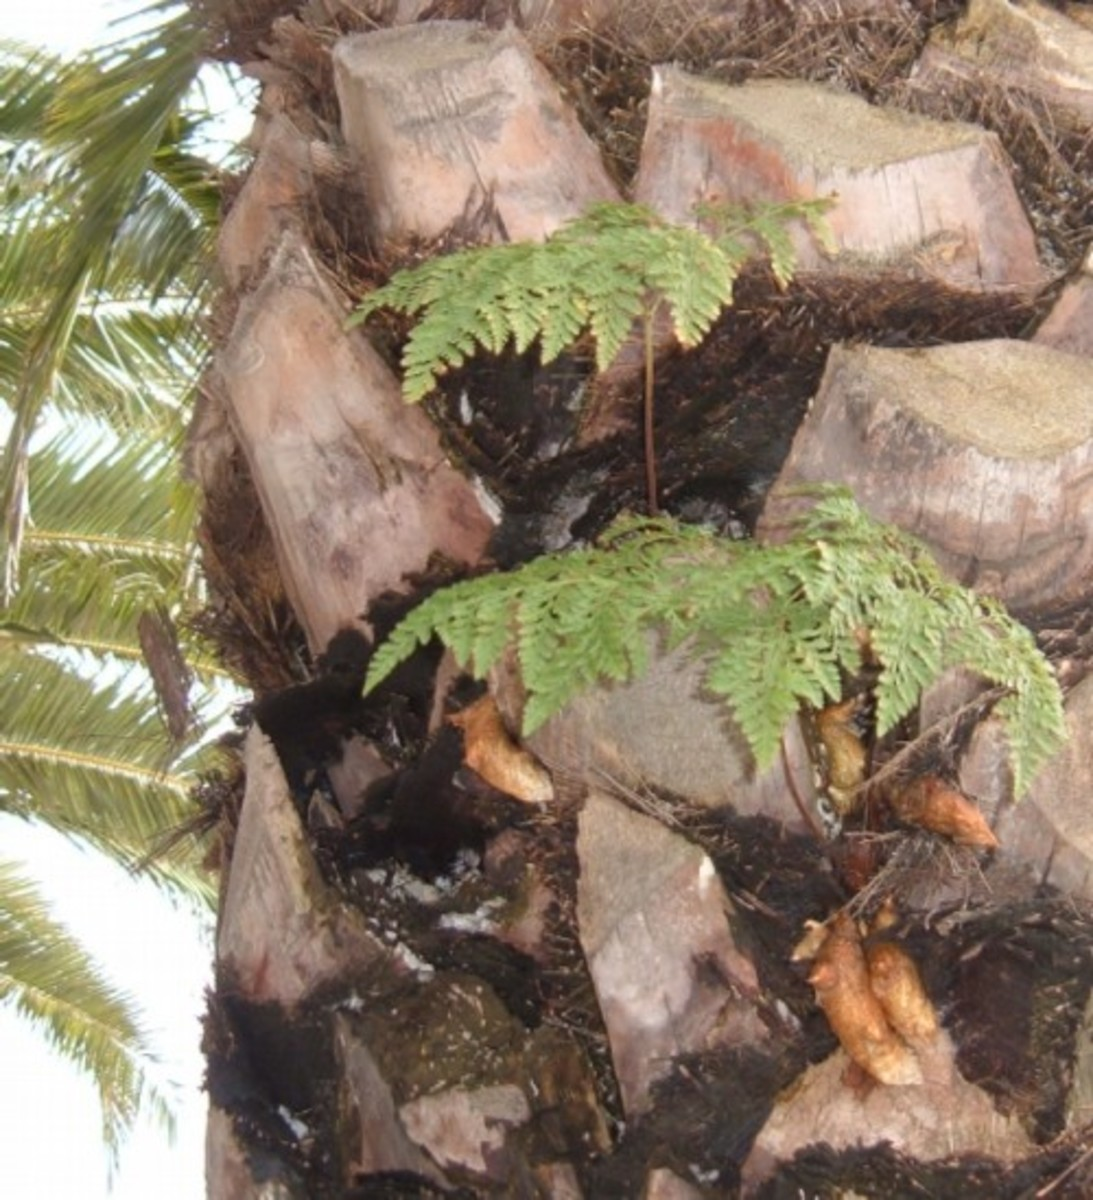 Fern (Davallia canariensis) growing as an epiphyte